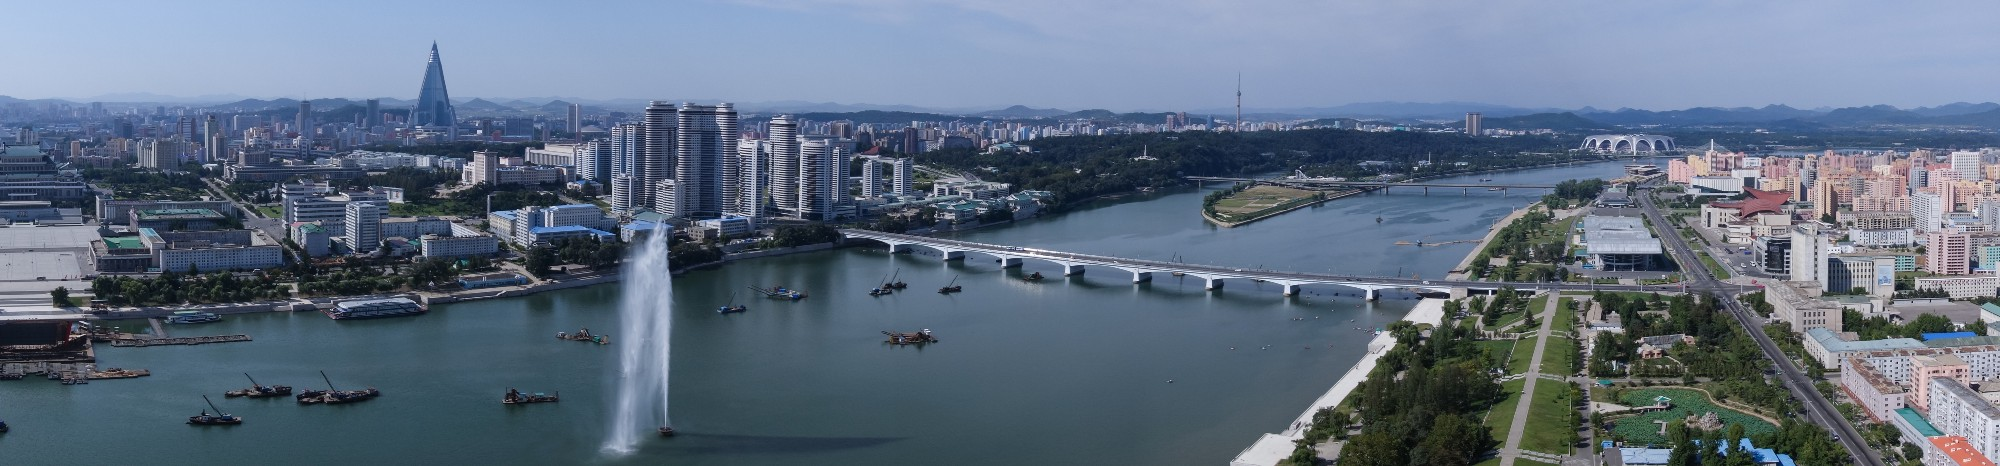 Taedong River as seen from the top of Juche Tower